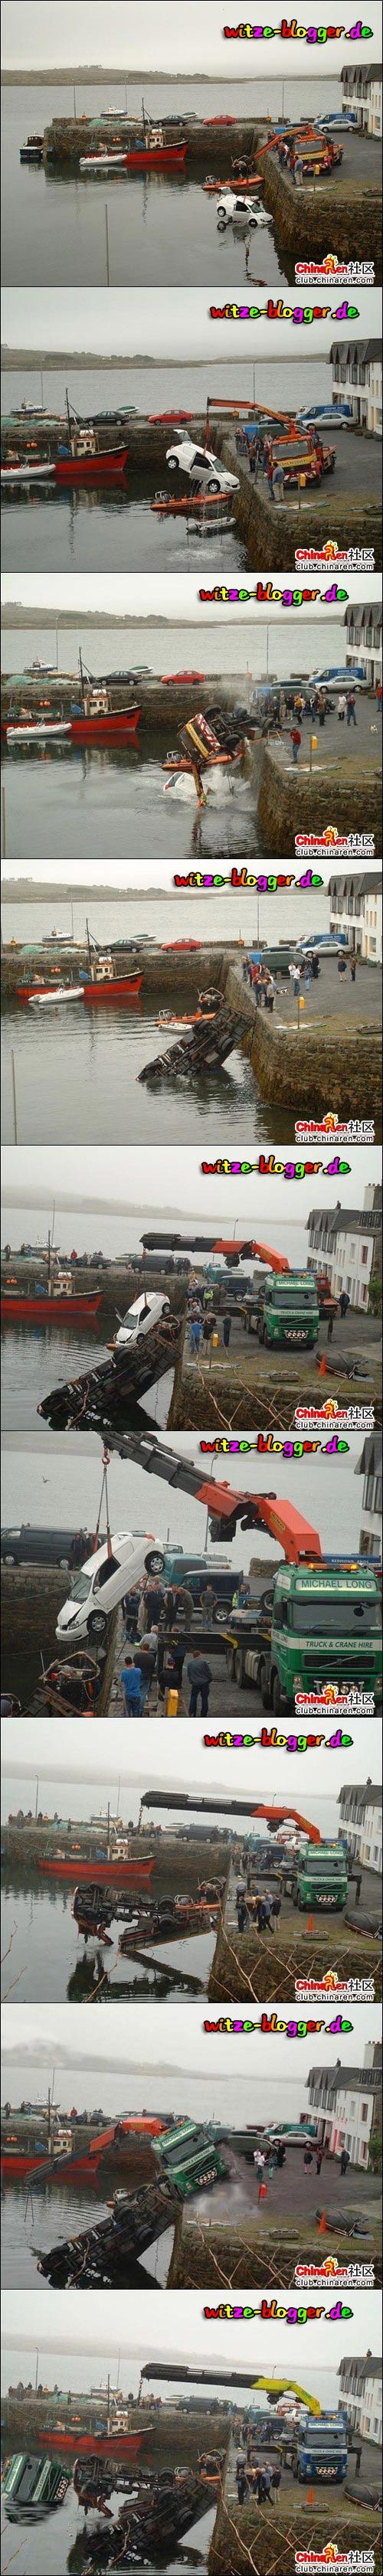 crazy crane accidents... .@Jorge Cavalcante (JORGENCA)